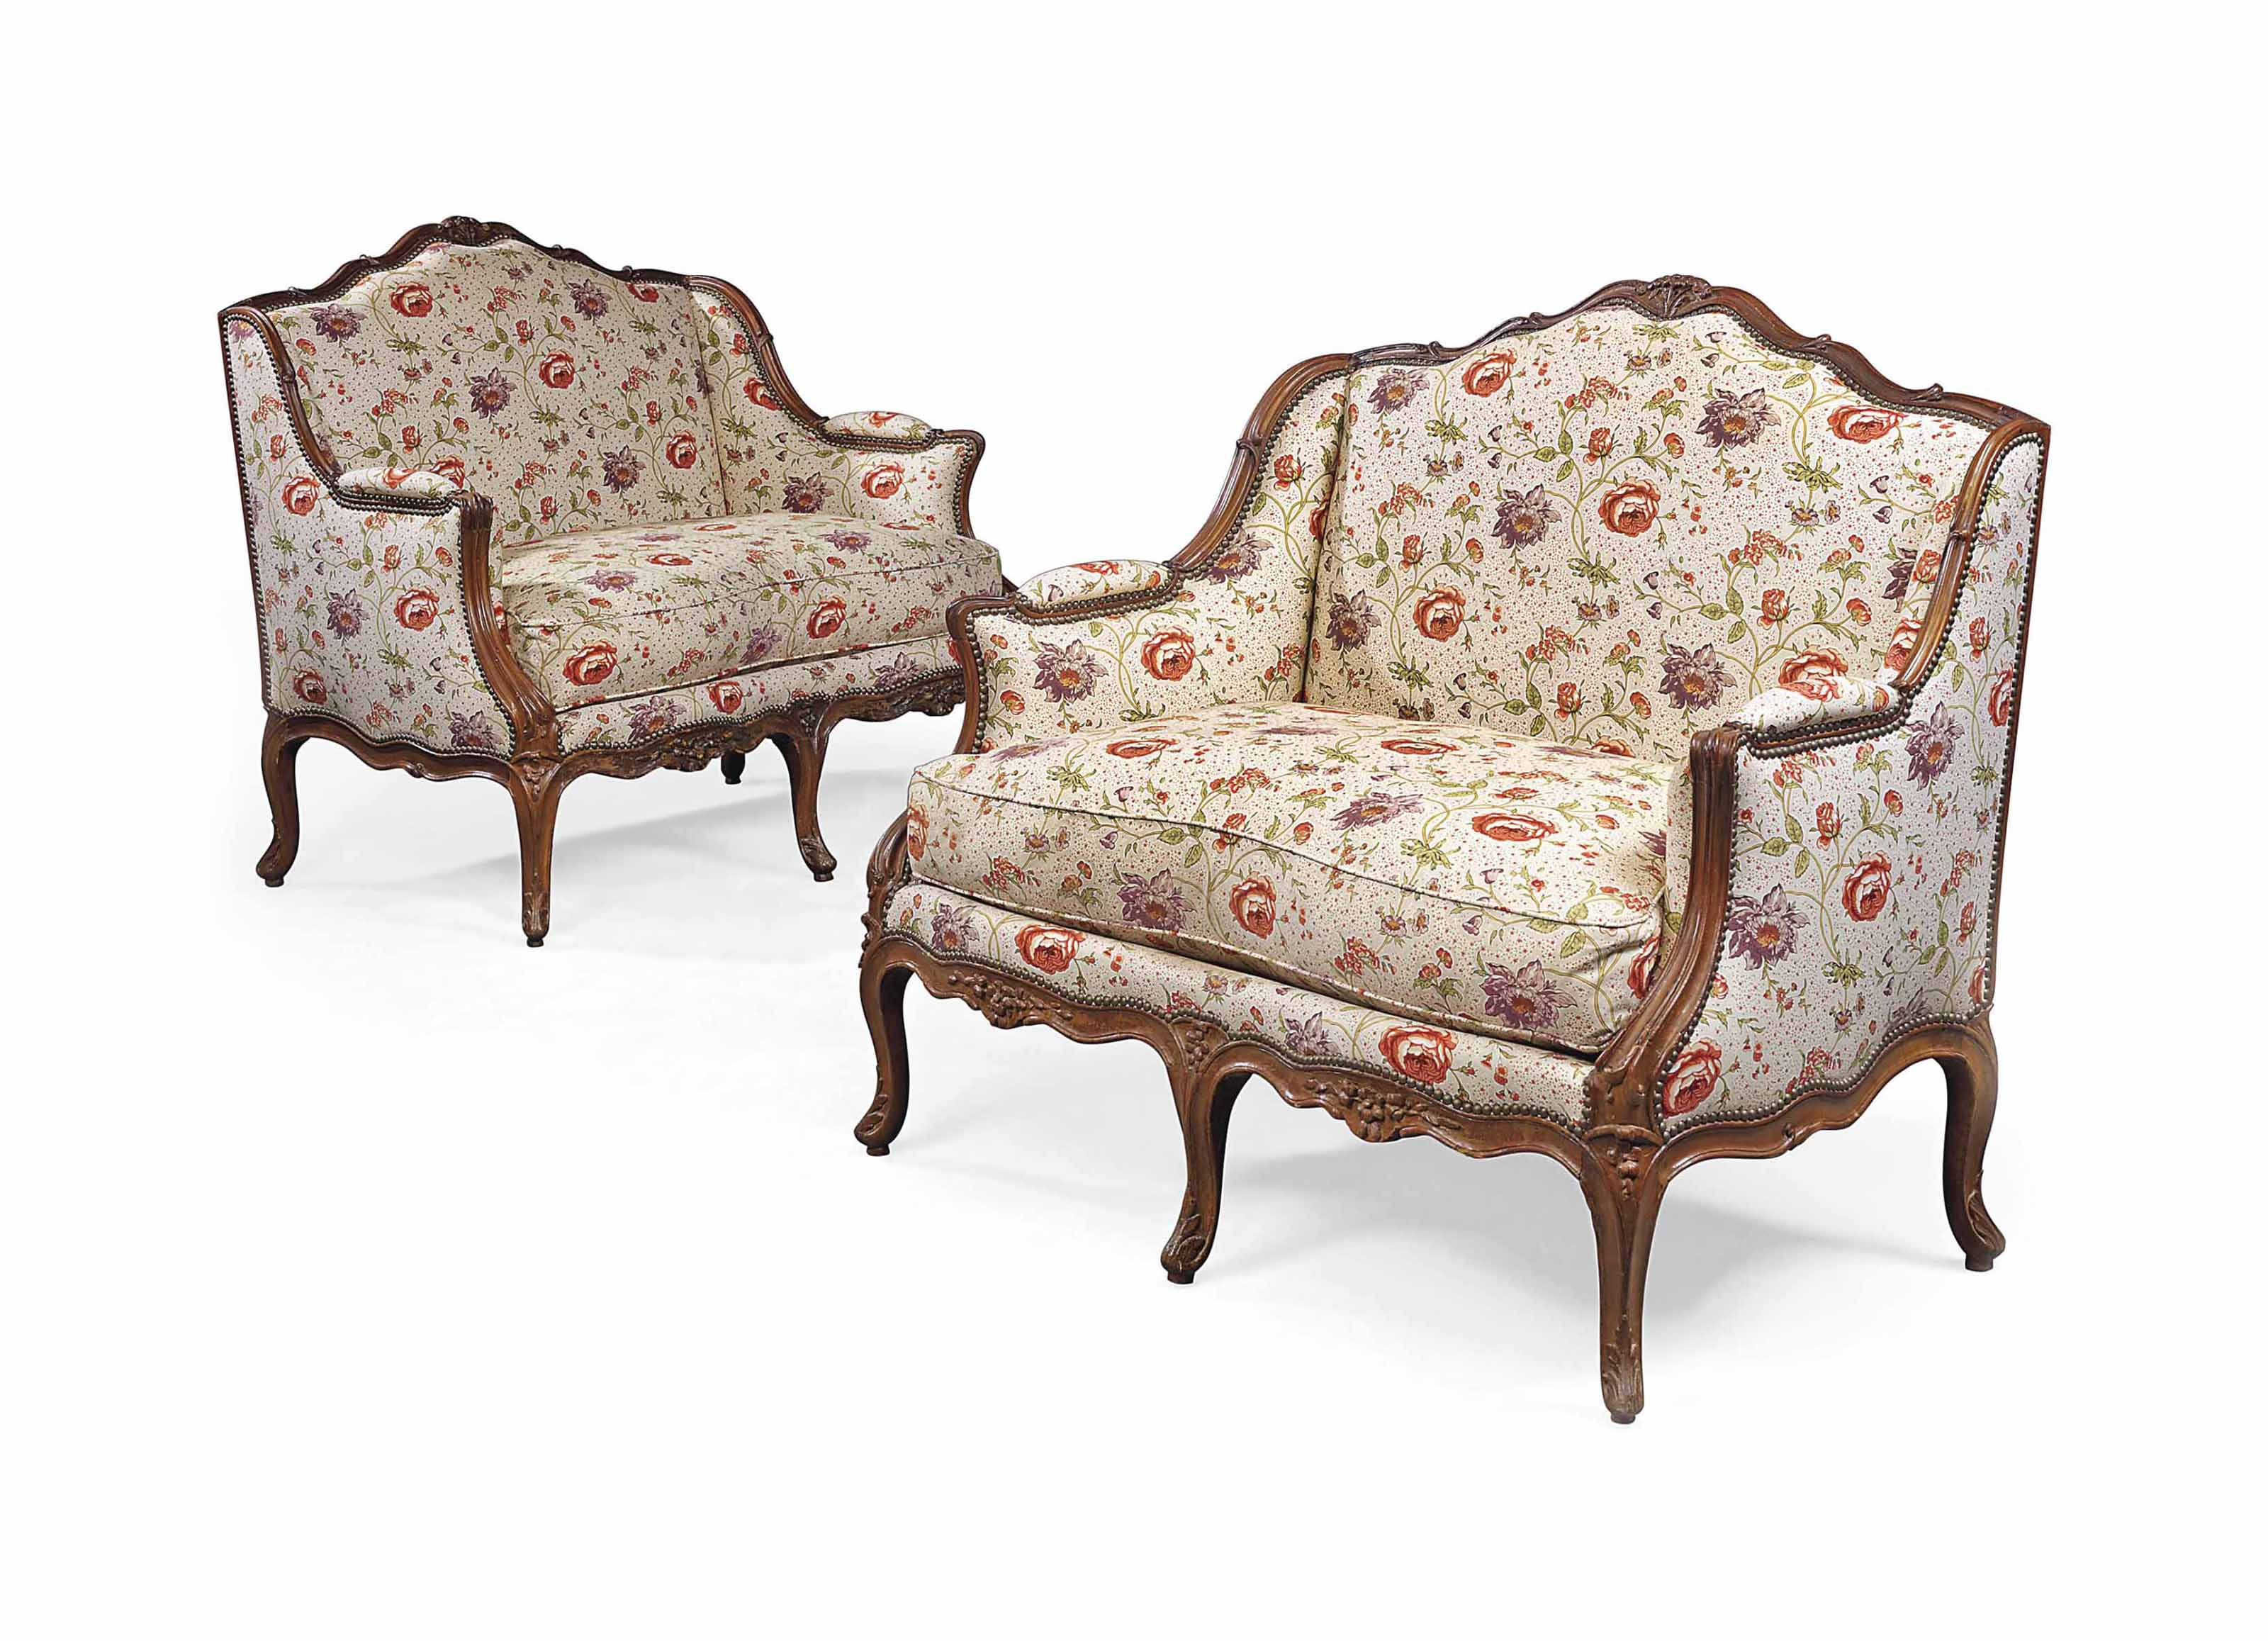 A PAIR OF LOUIS XV WALNUT MARQUISES